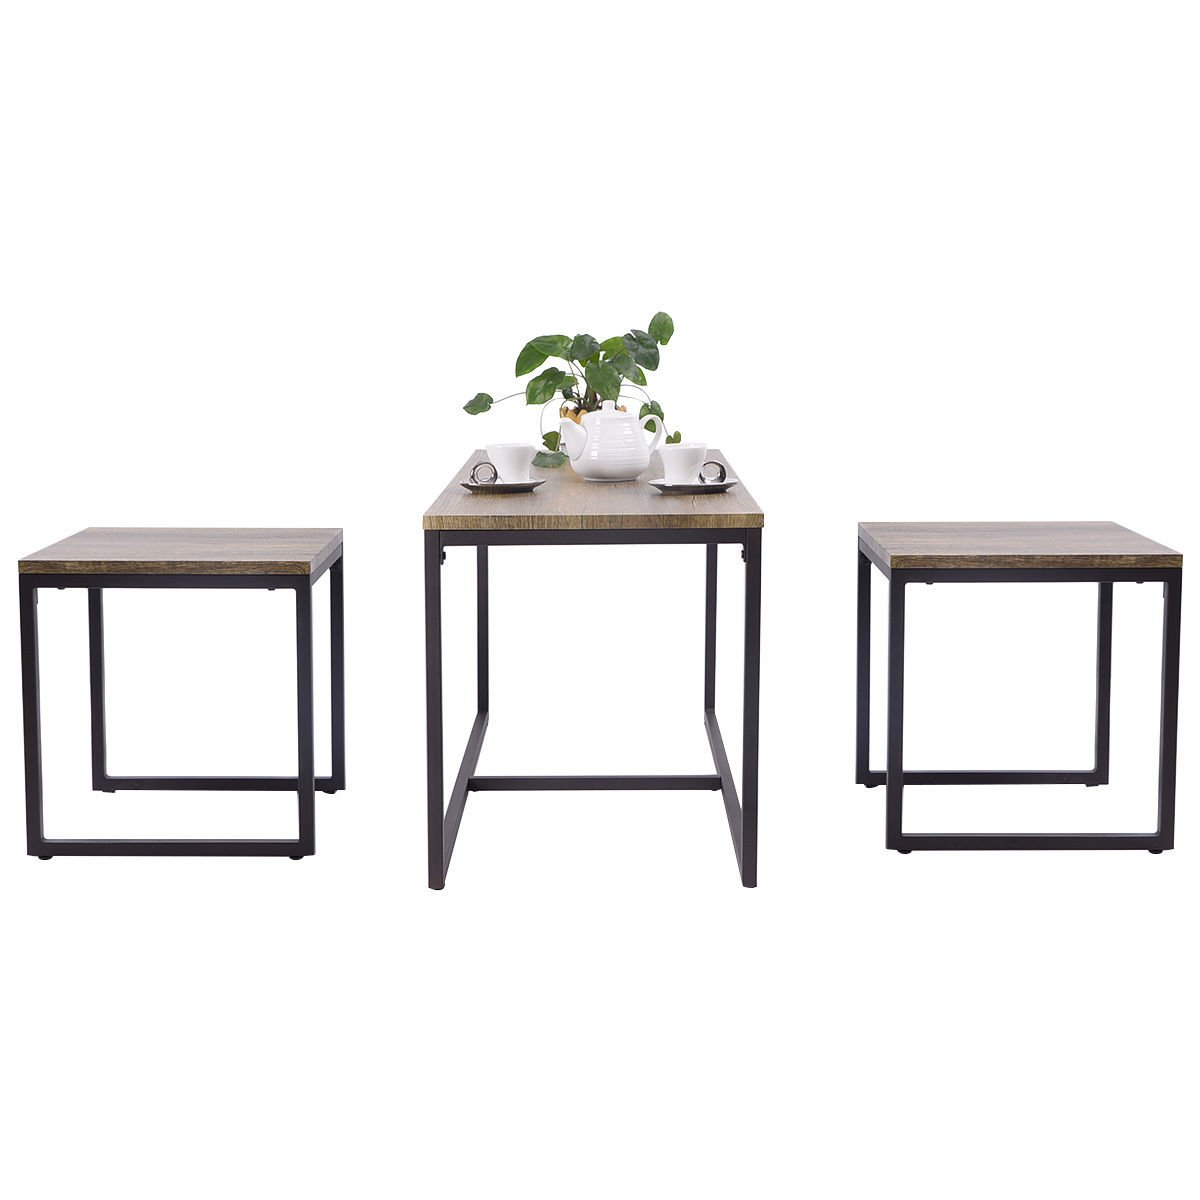 Moon Daughter 3 Piece Nesting Coffee Chairs & End Table Set Wood Modern Living Room Furniture Decor